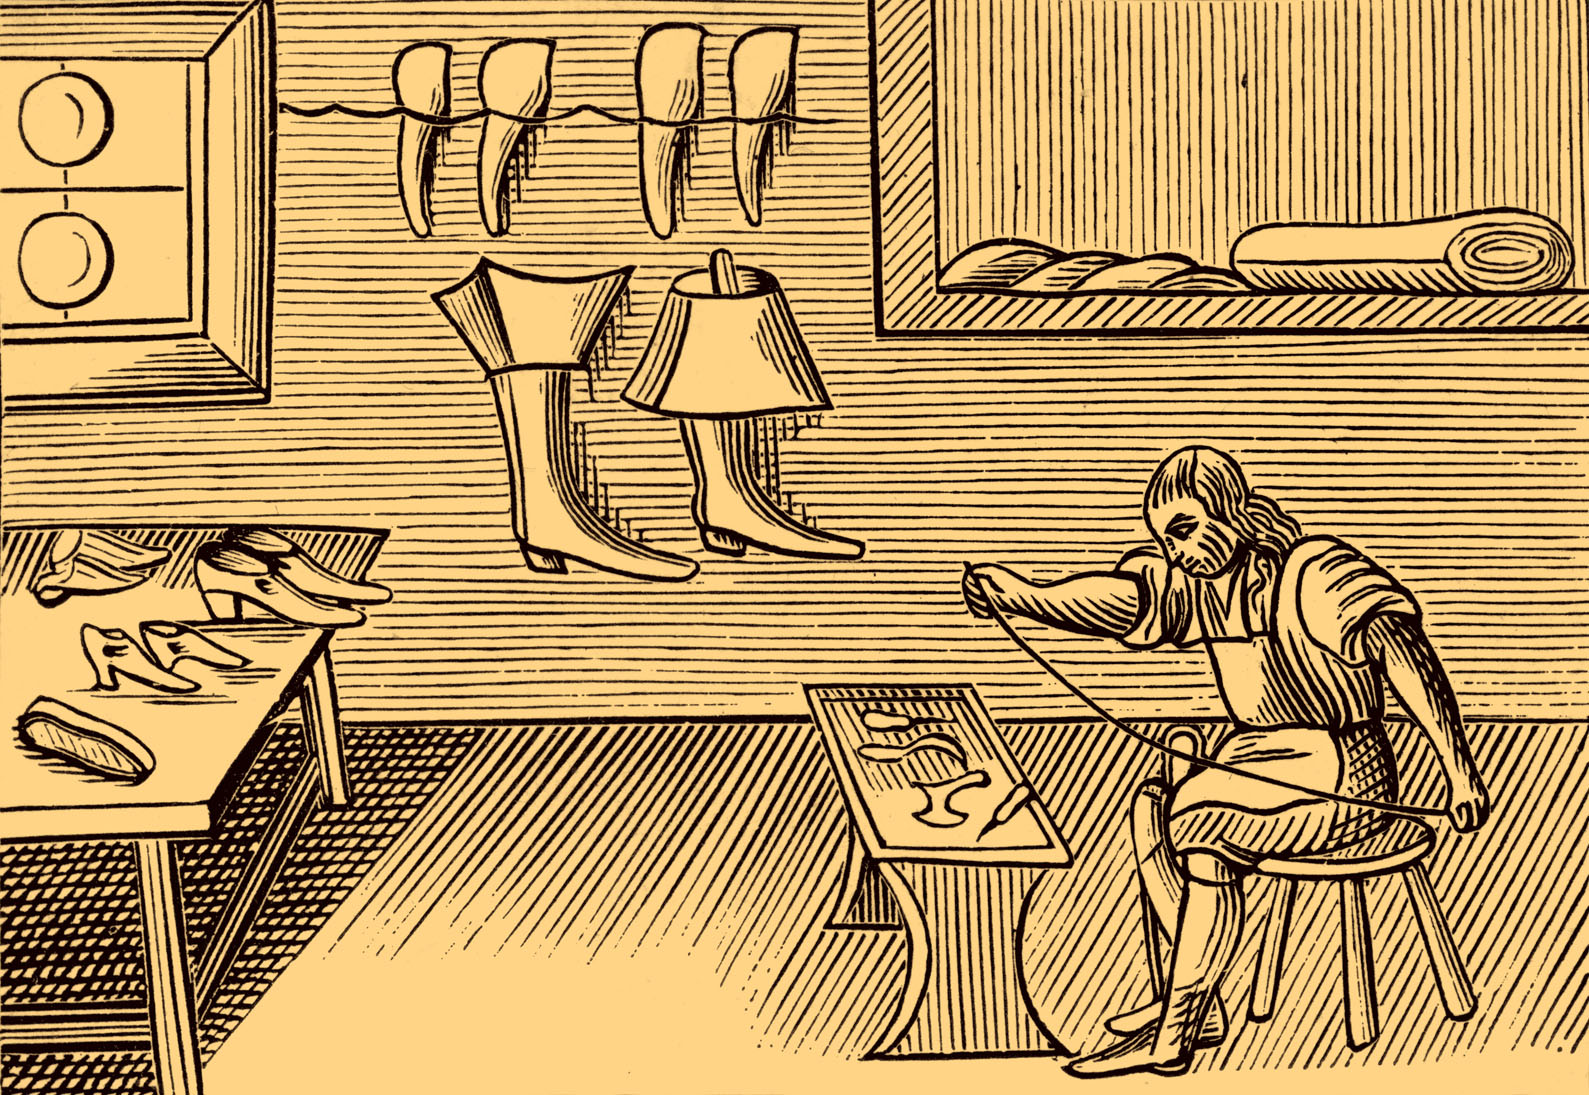 Shoemaker, taken from a 1659 English edition of John Amos Comenius' 'Orbis sensualium pictus', probably the most widely circulated school textbook of its time. JAC: Czech educator and writer, 28 March, 1592 – 4 November, 1670 (Photo by Culture Club/Getty Images) *** Local Caption ***